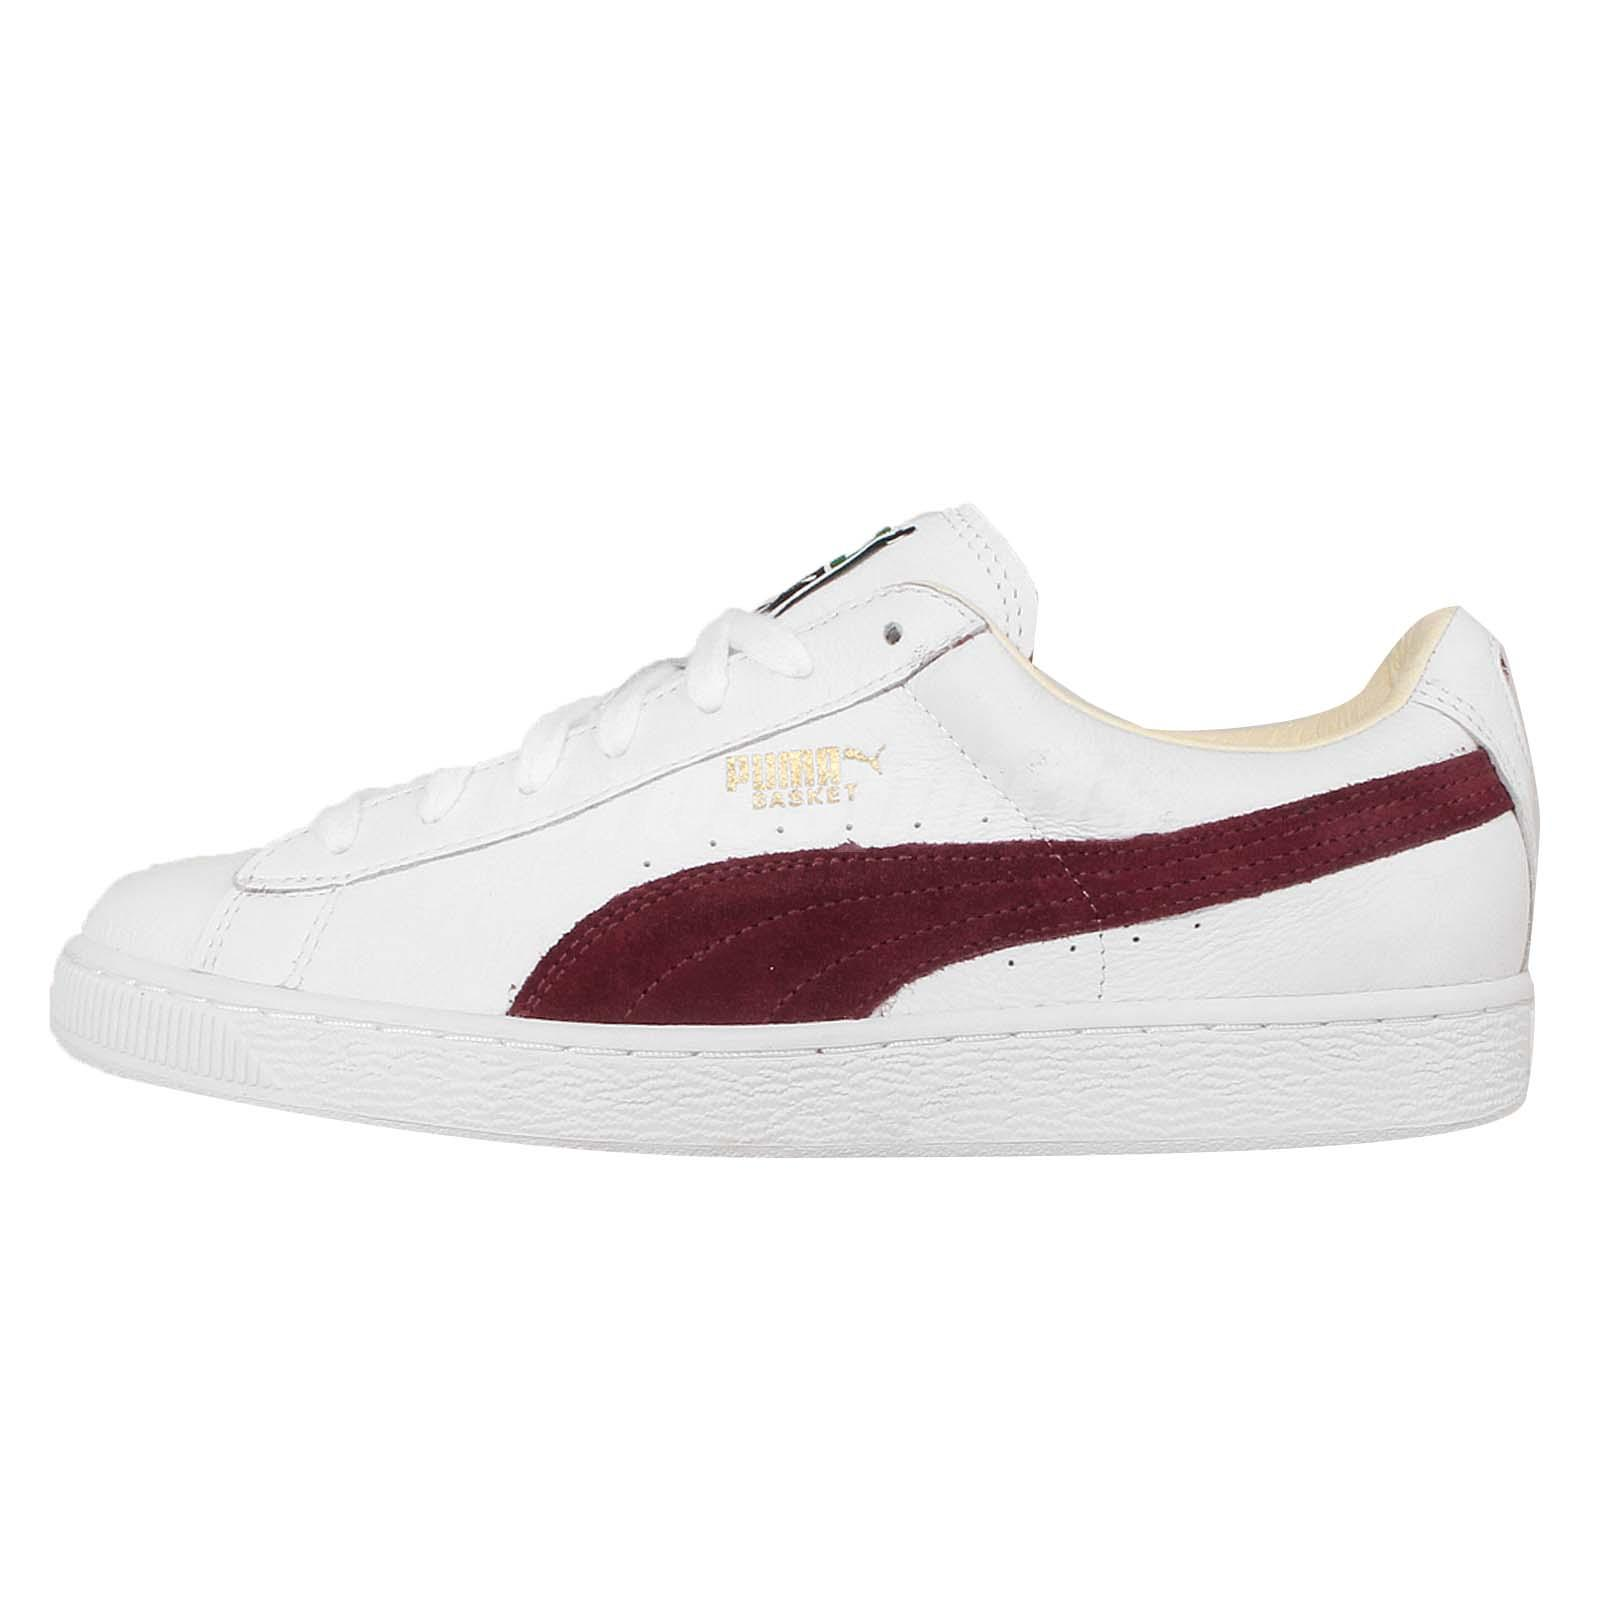 puma basket classic white brown mens retro shoes sneakers trainers 351912 38 ebay. Black Bedroom Furniture Sets. Home Design Ideas